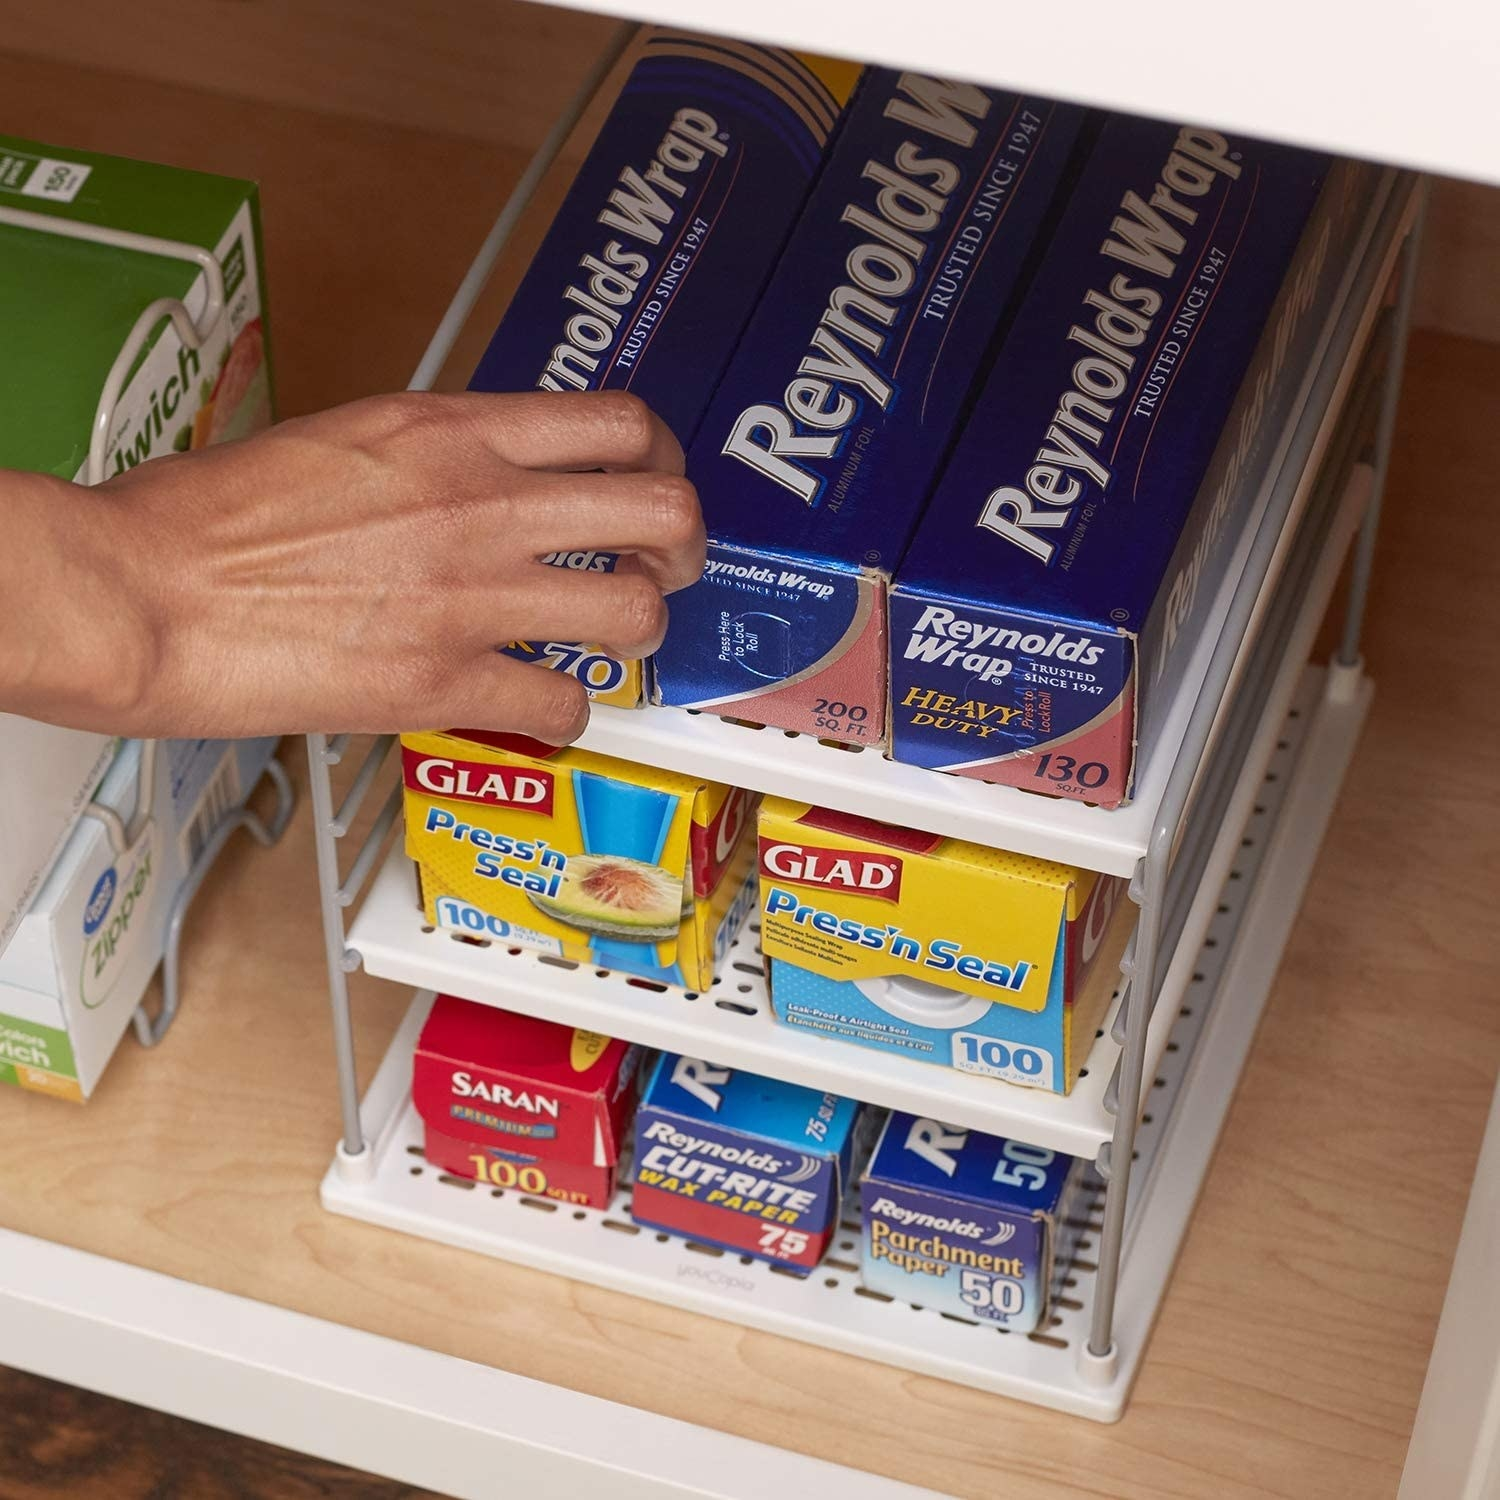 person reaching for a box of food wrap on the organizer